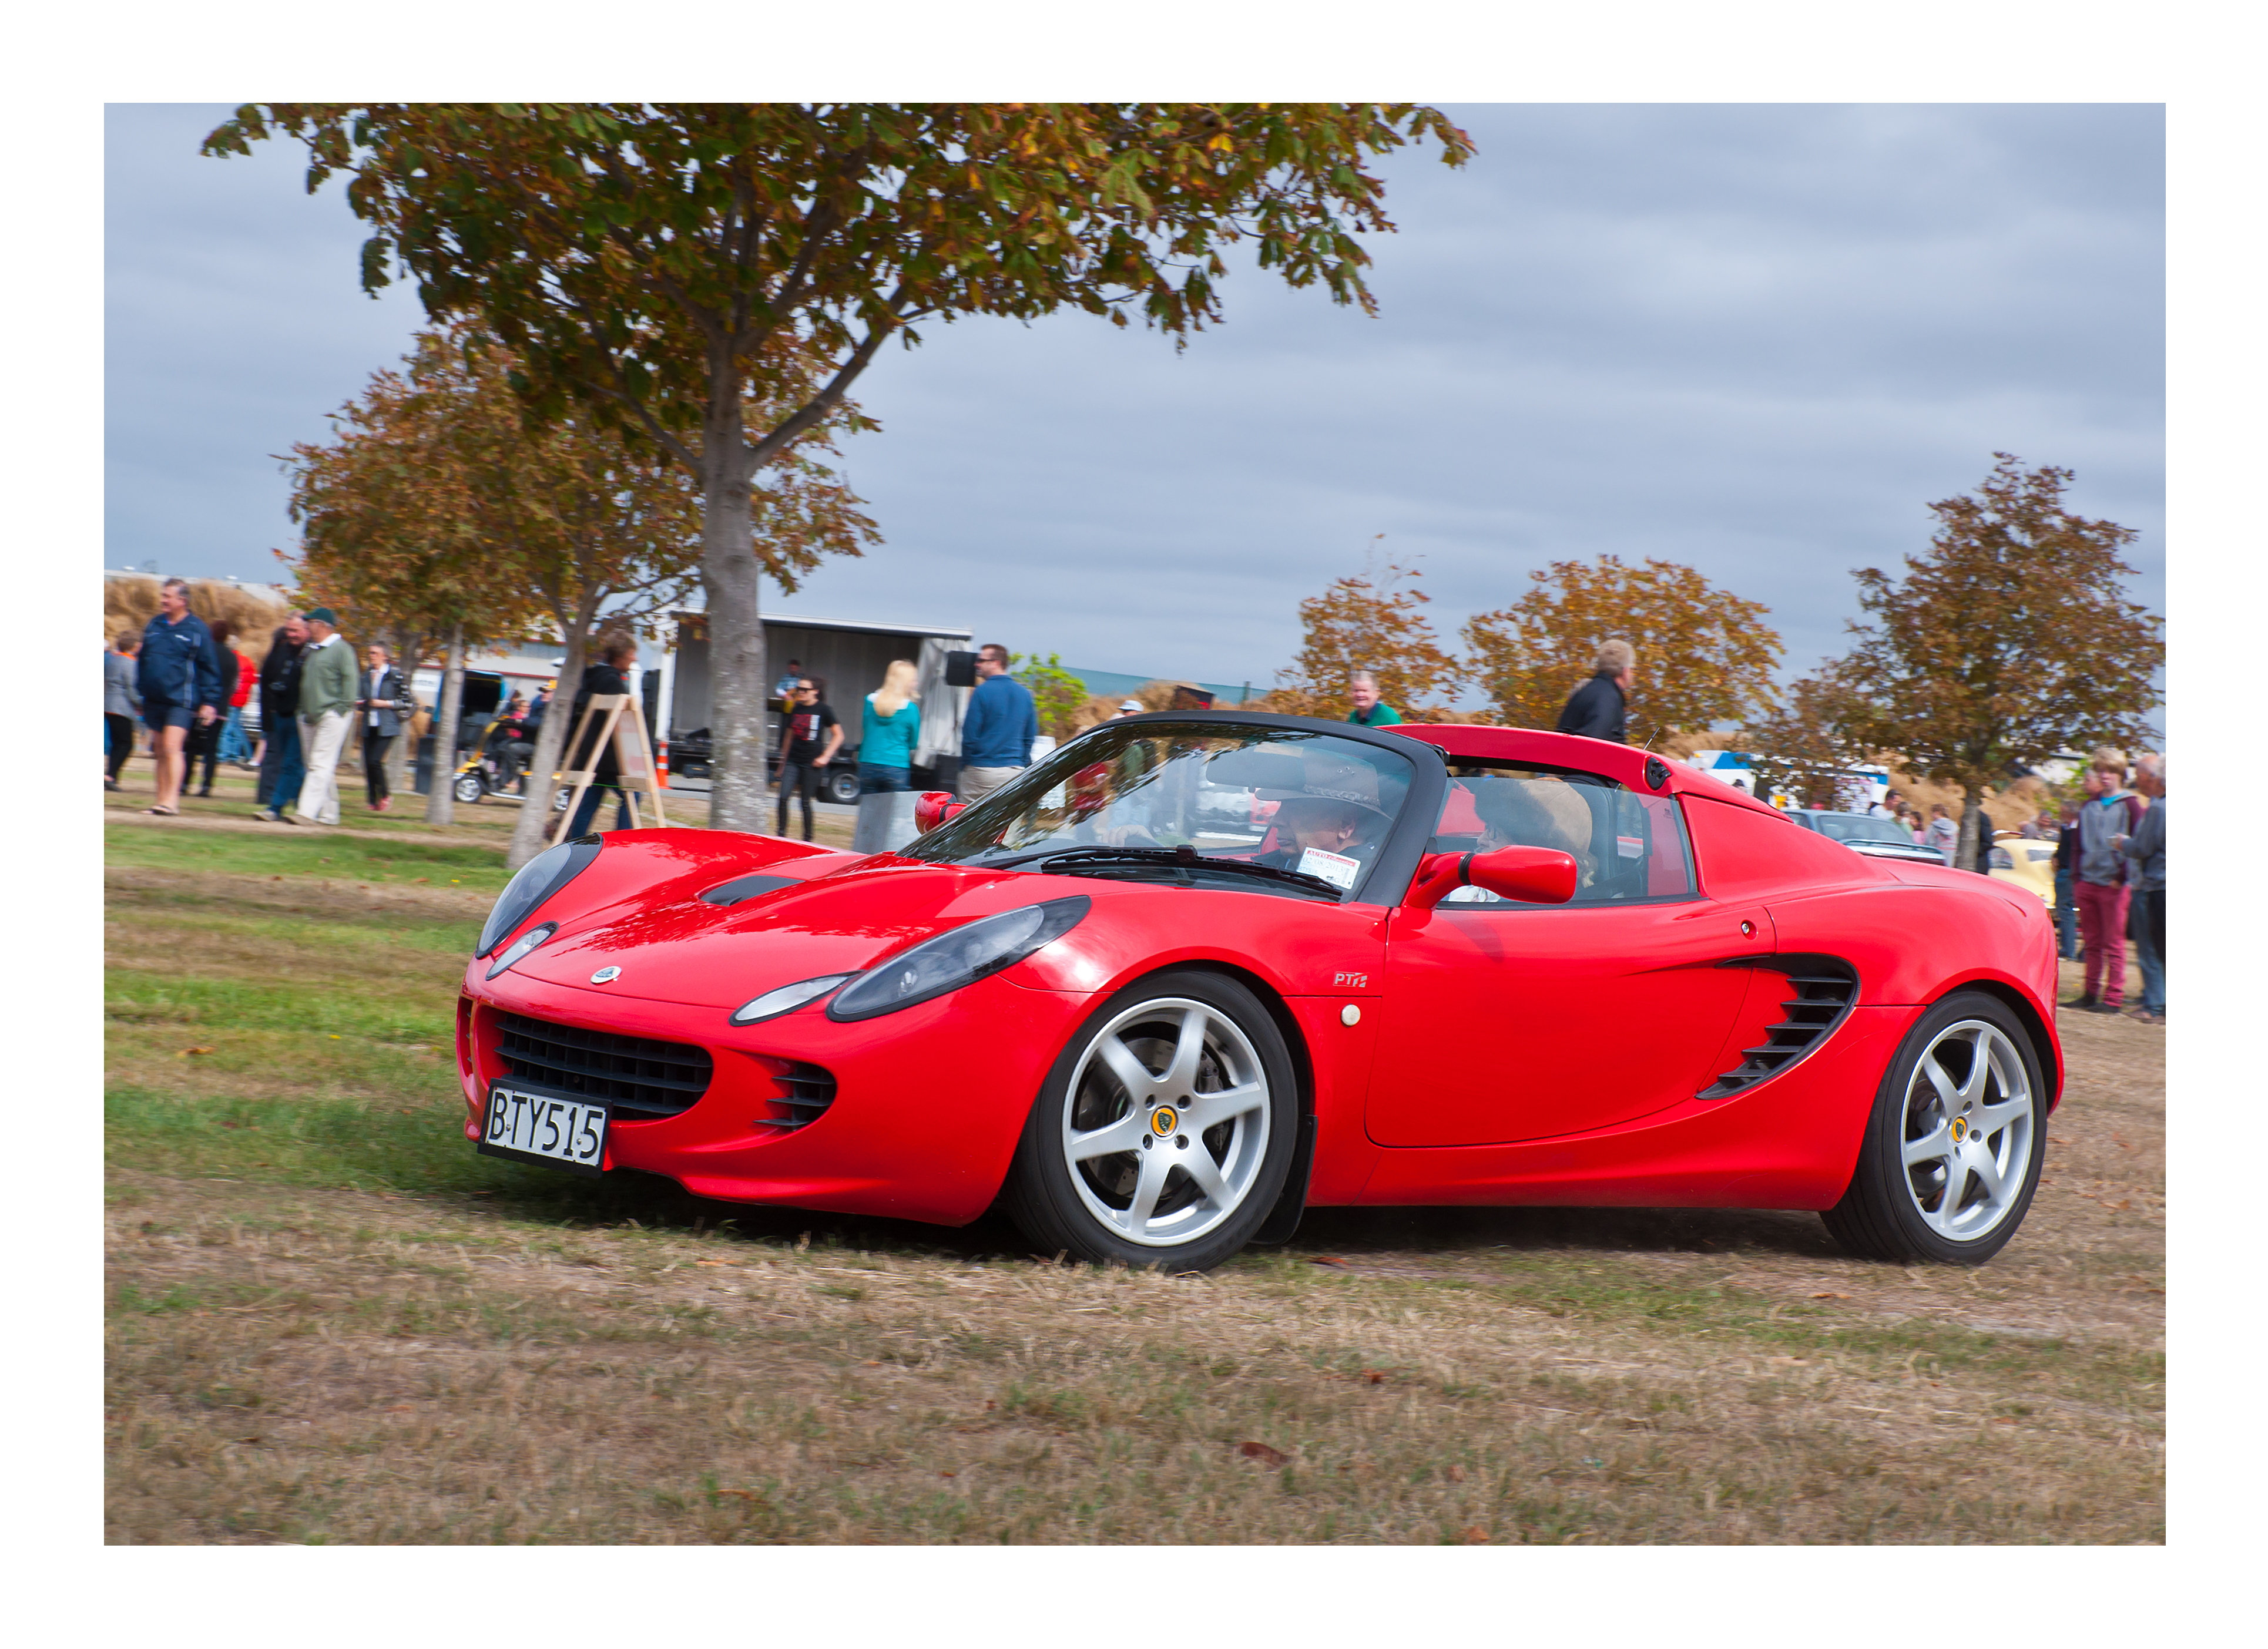 Lotus elise from 2002 photo